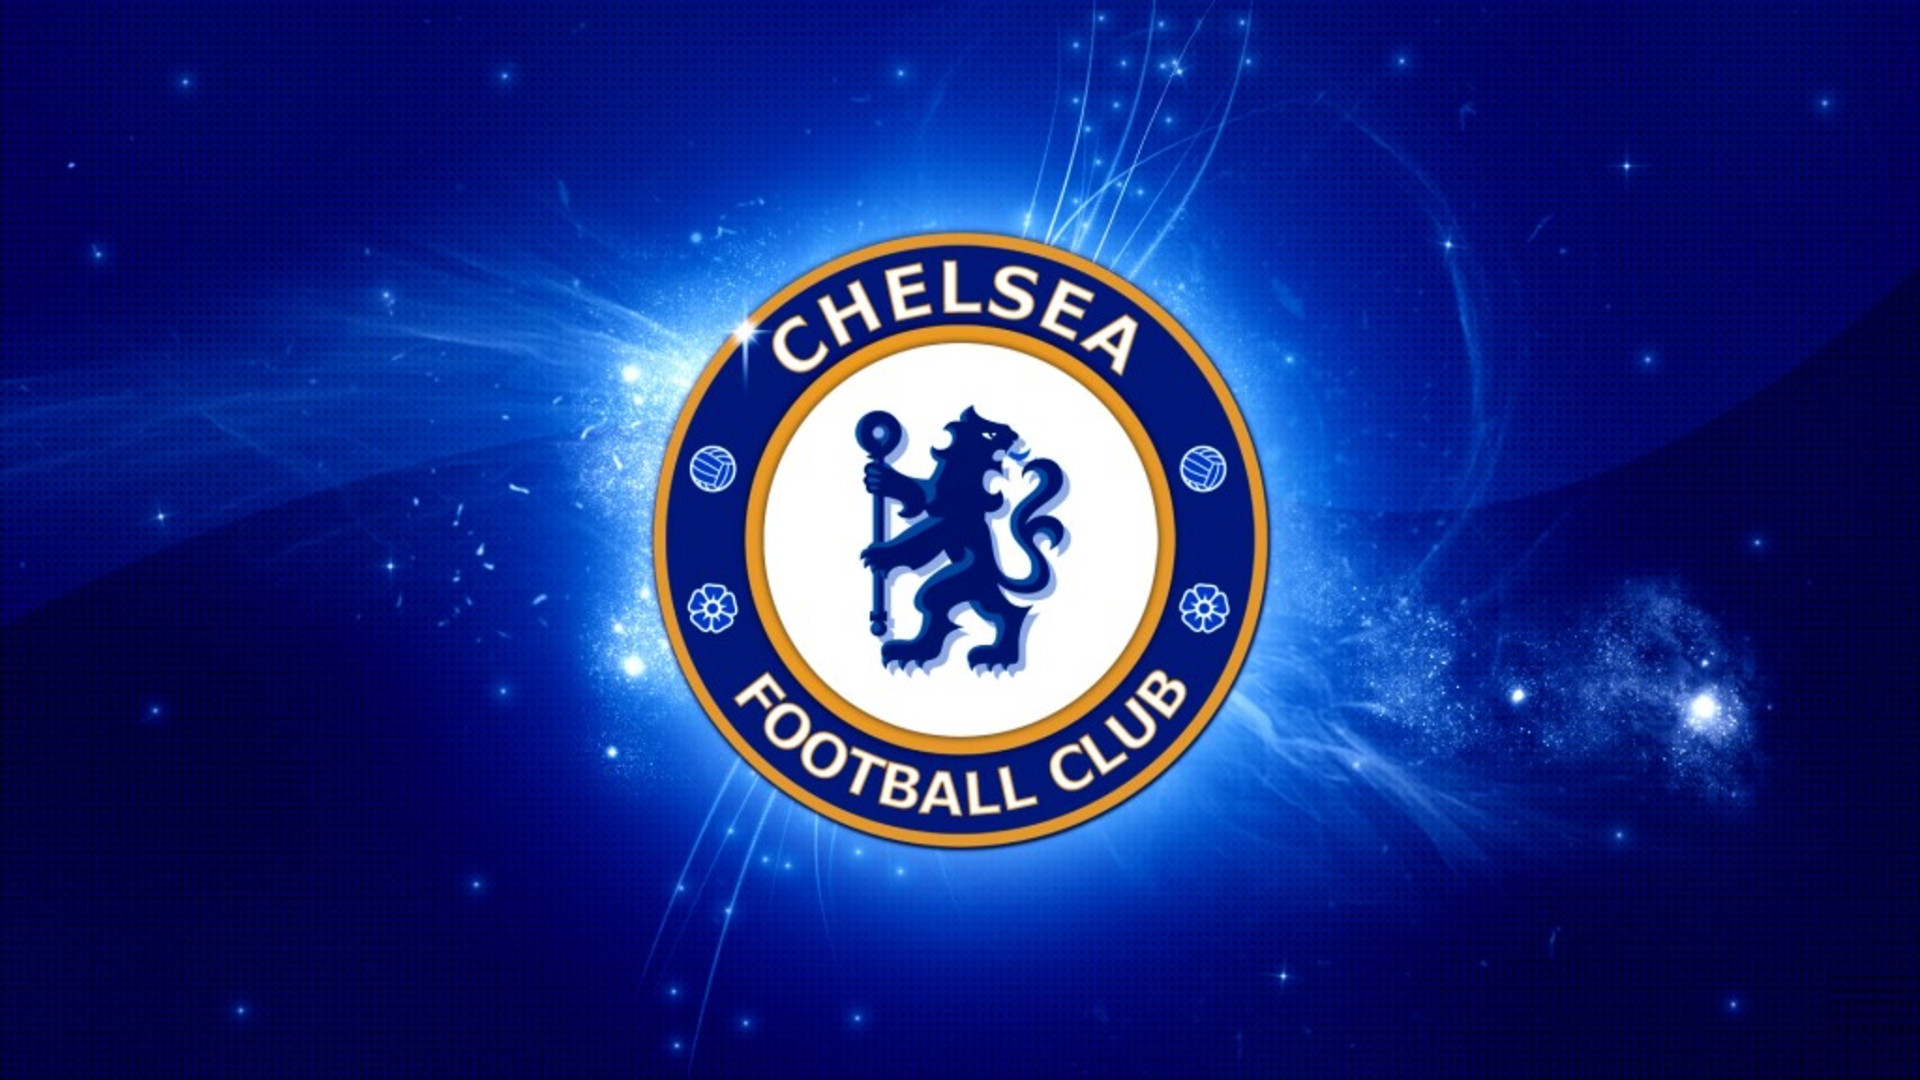 Football club Chelsea logo wallpapers and images   wallpapers 1920x1080